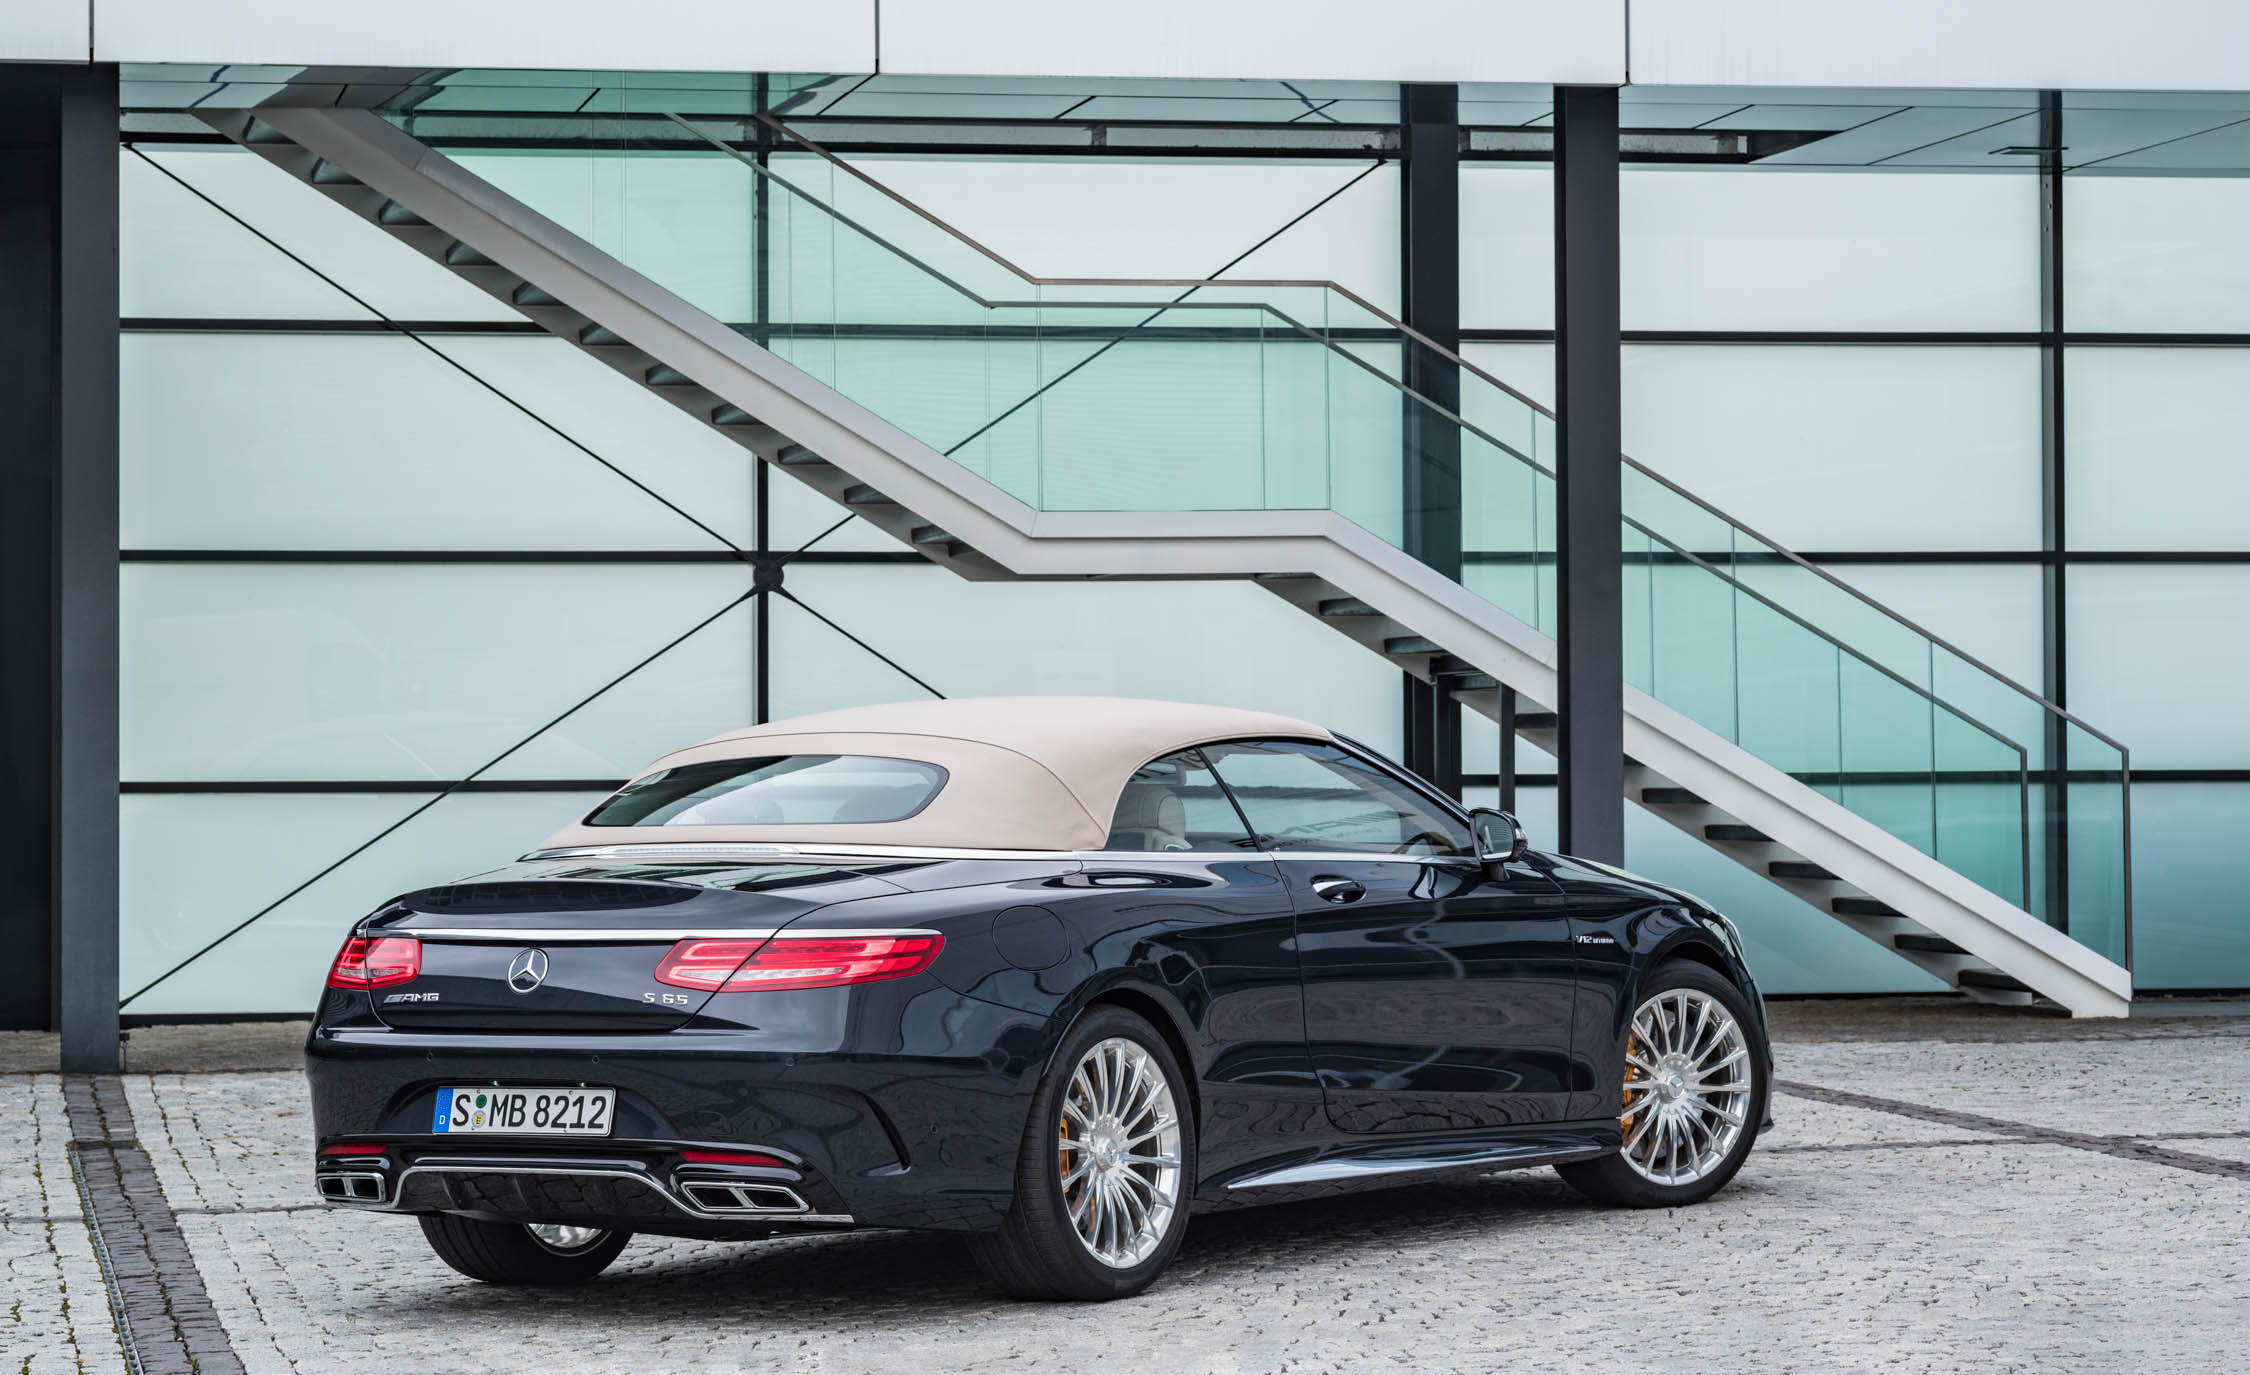 2017 Mercedes Amg S65 Cabriolet Exterior (View 1 of 15)